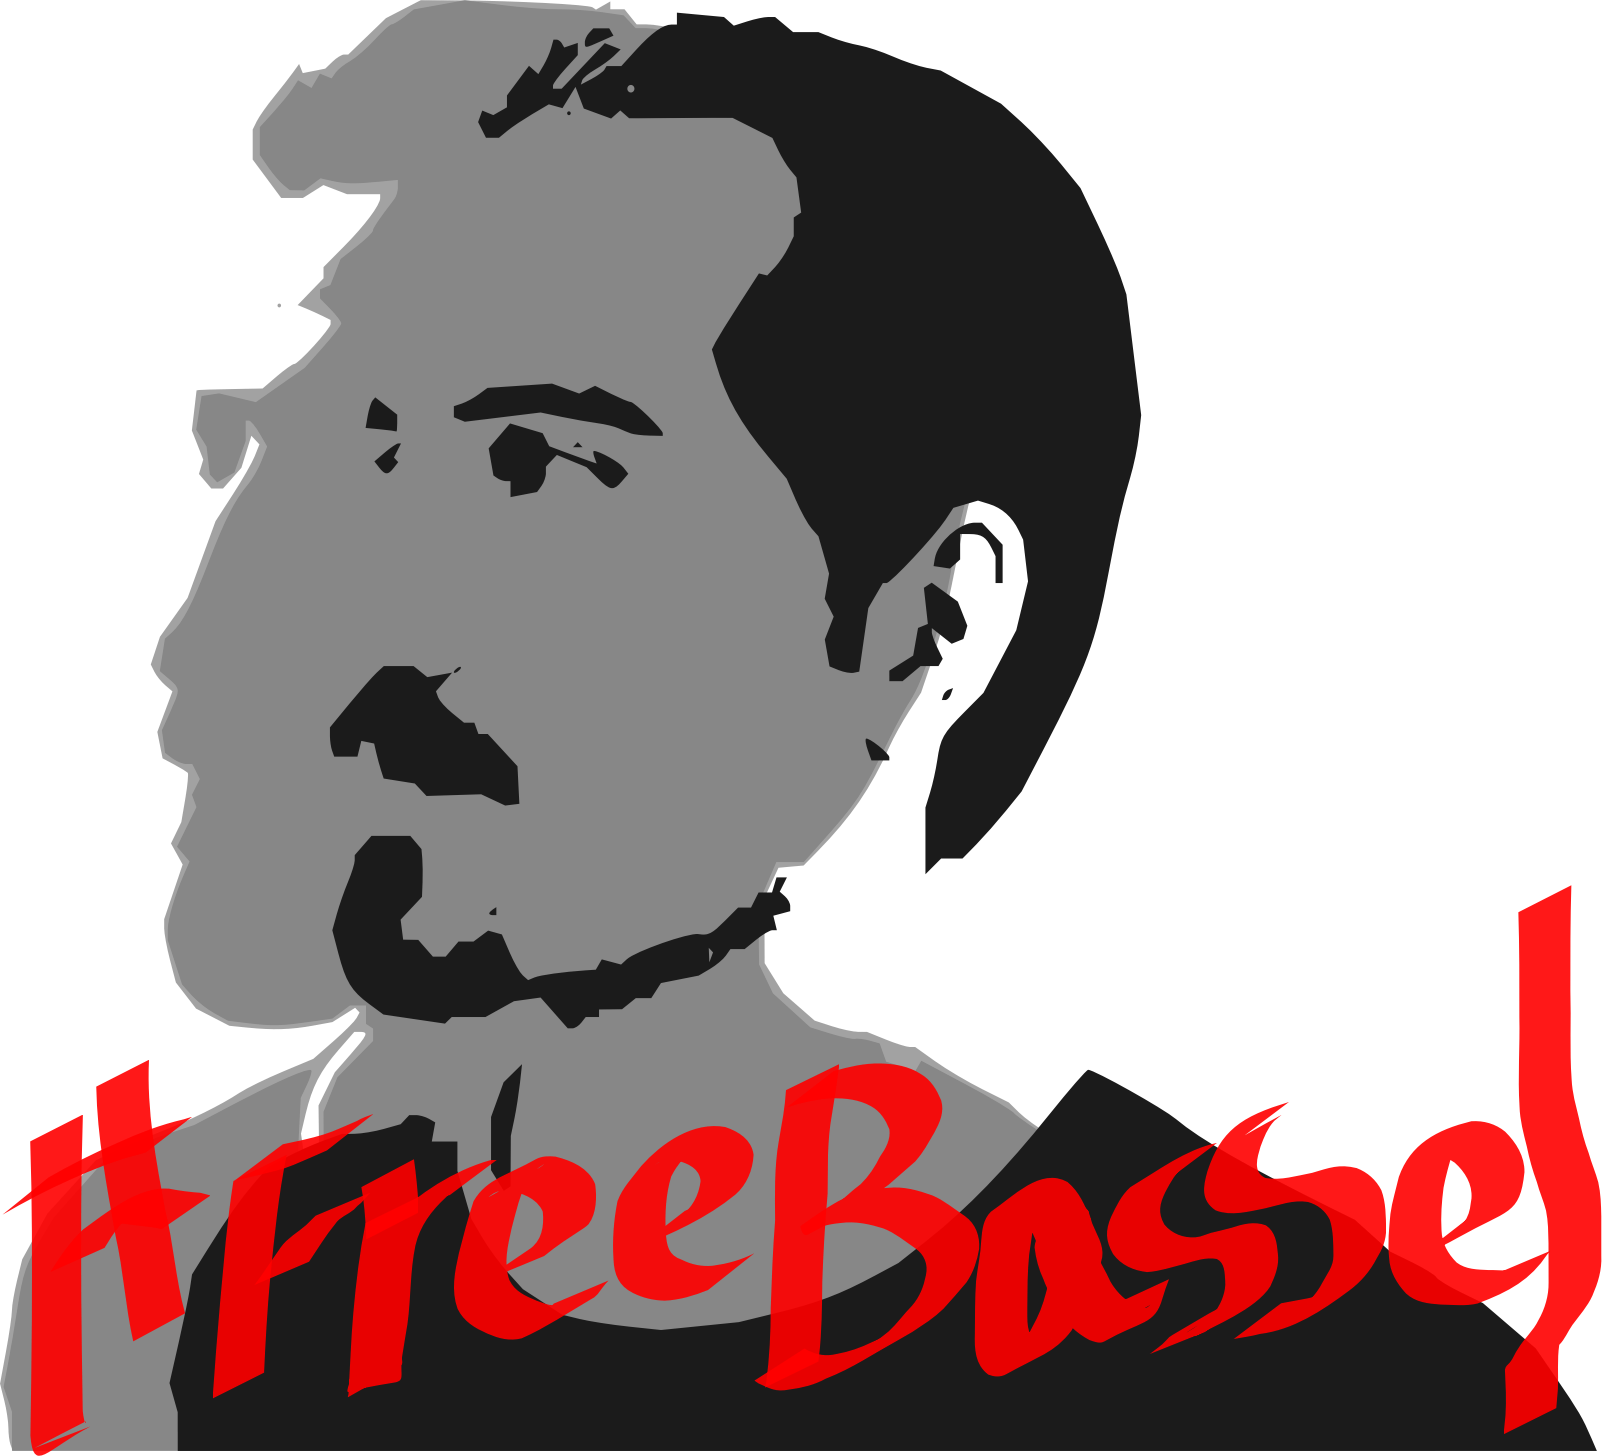 FreeBassel  by jykhui